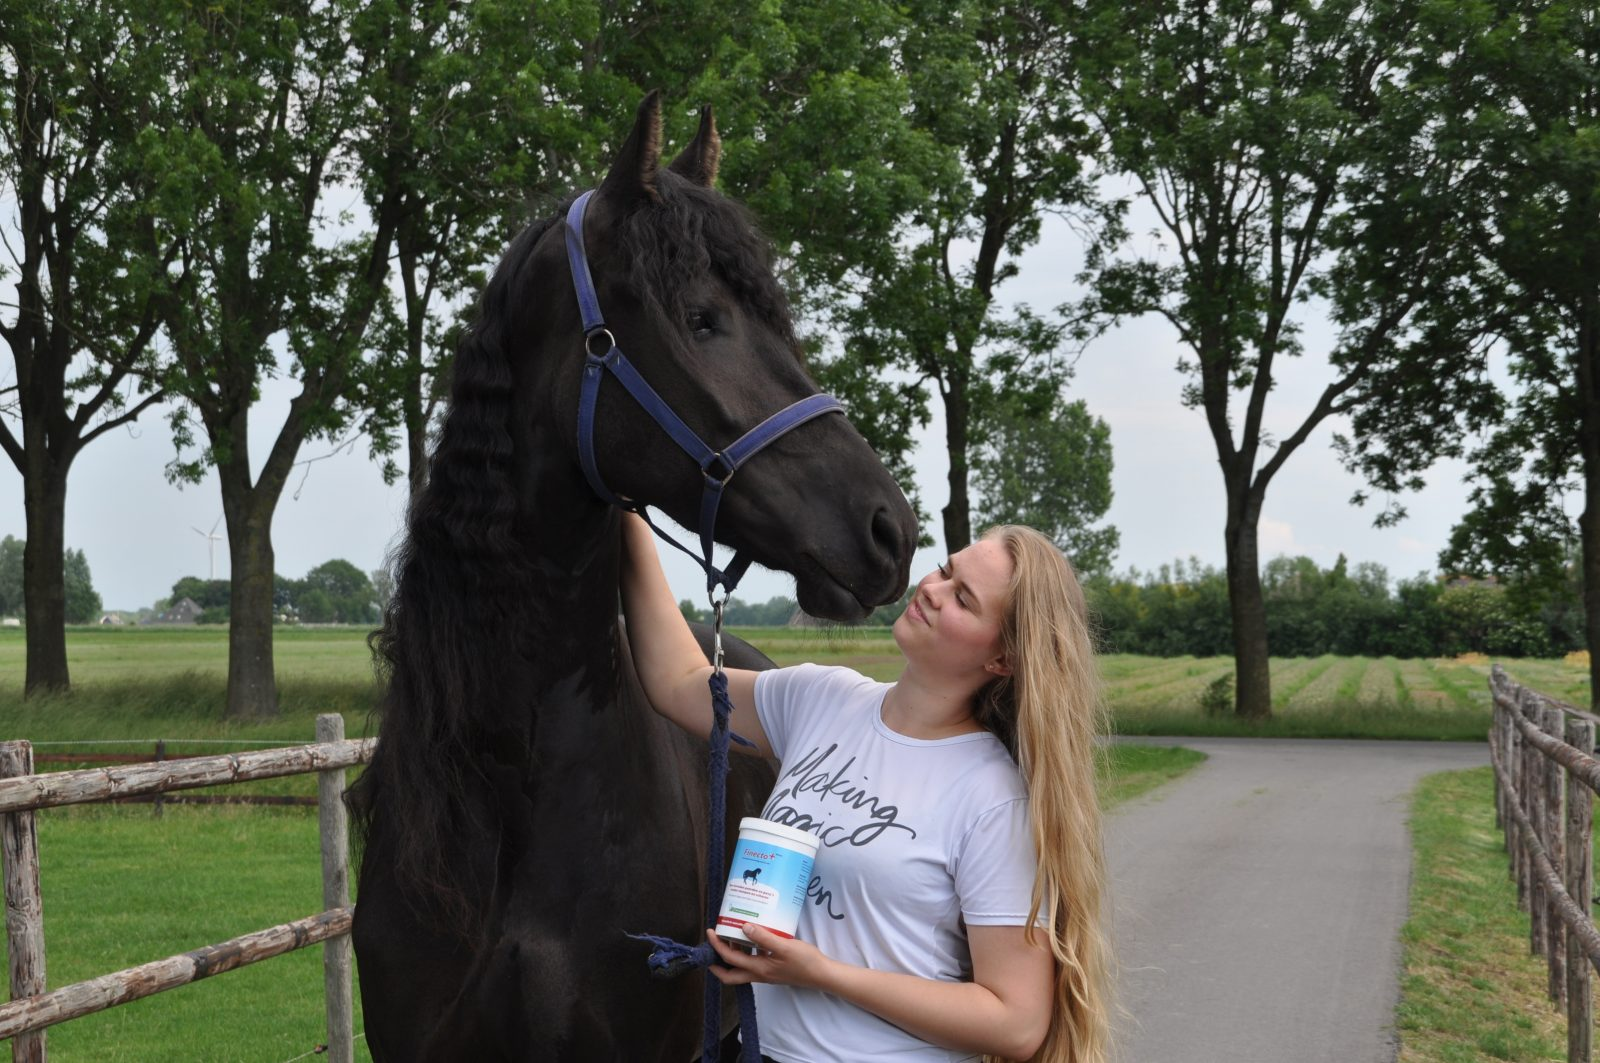 Janne test finecto horse